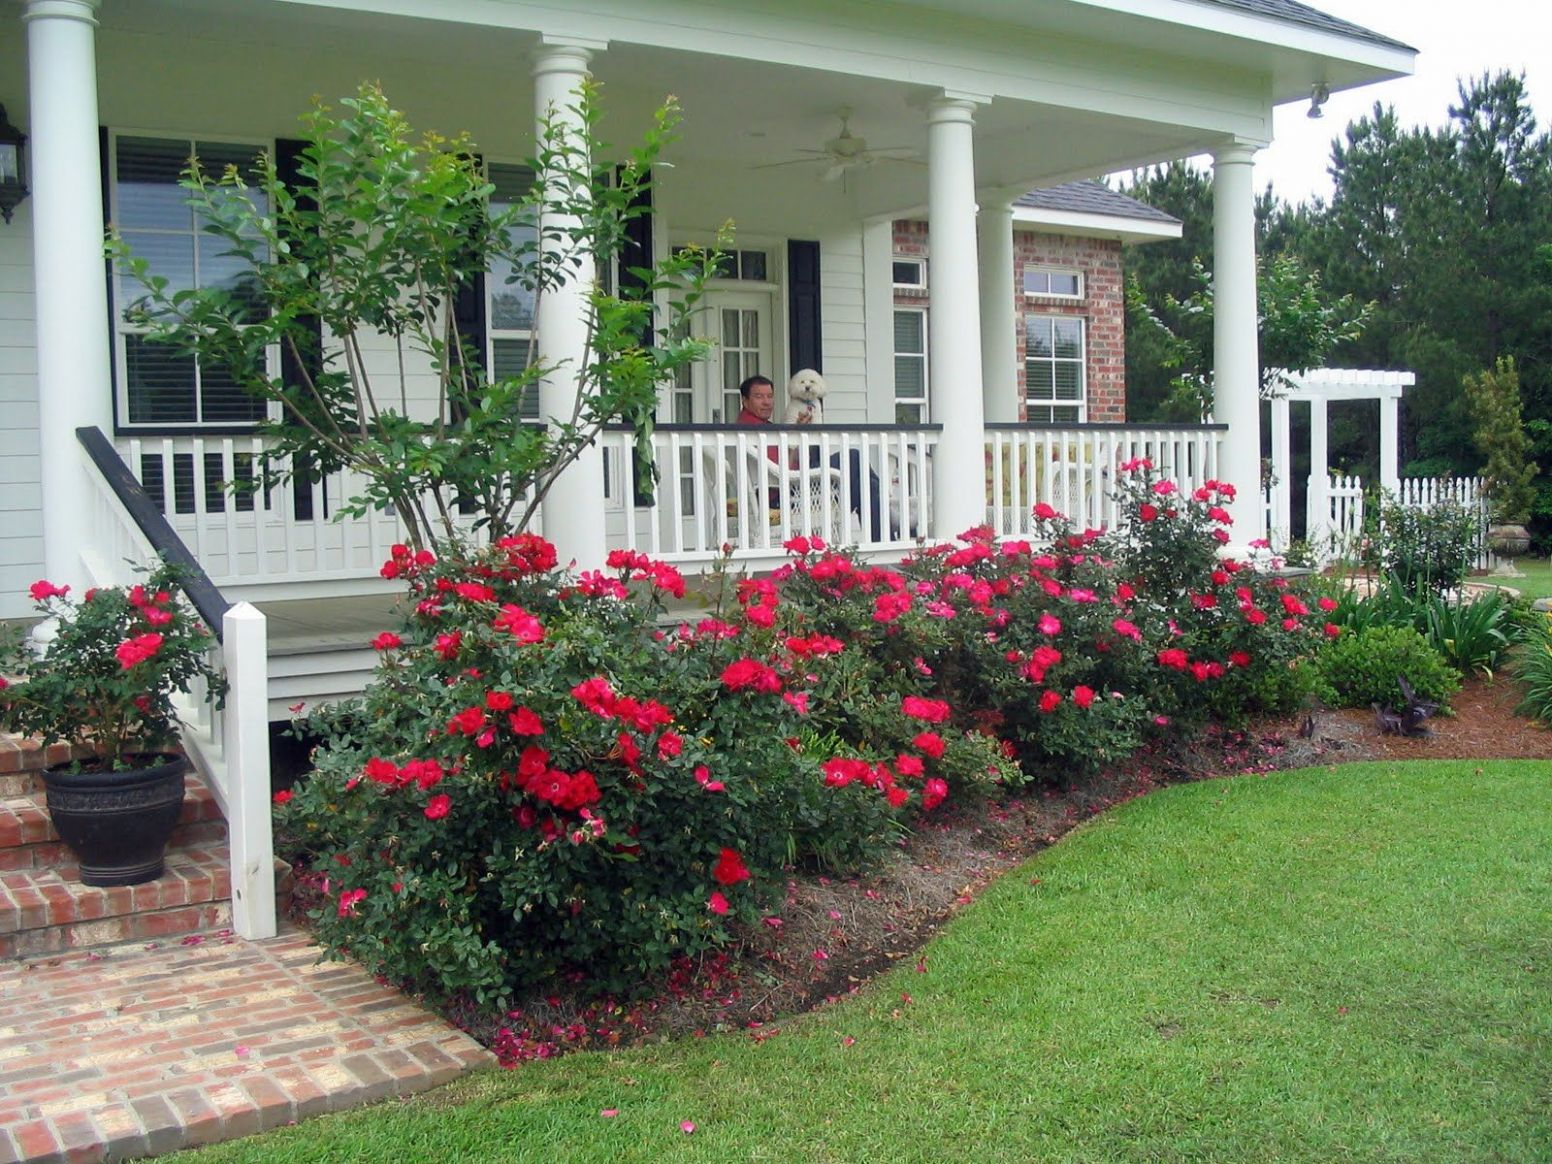 My Life on the Front Porch (With images) | Porch landscaping ...